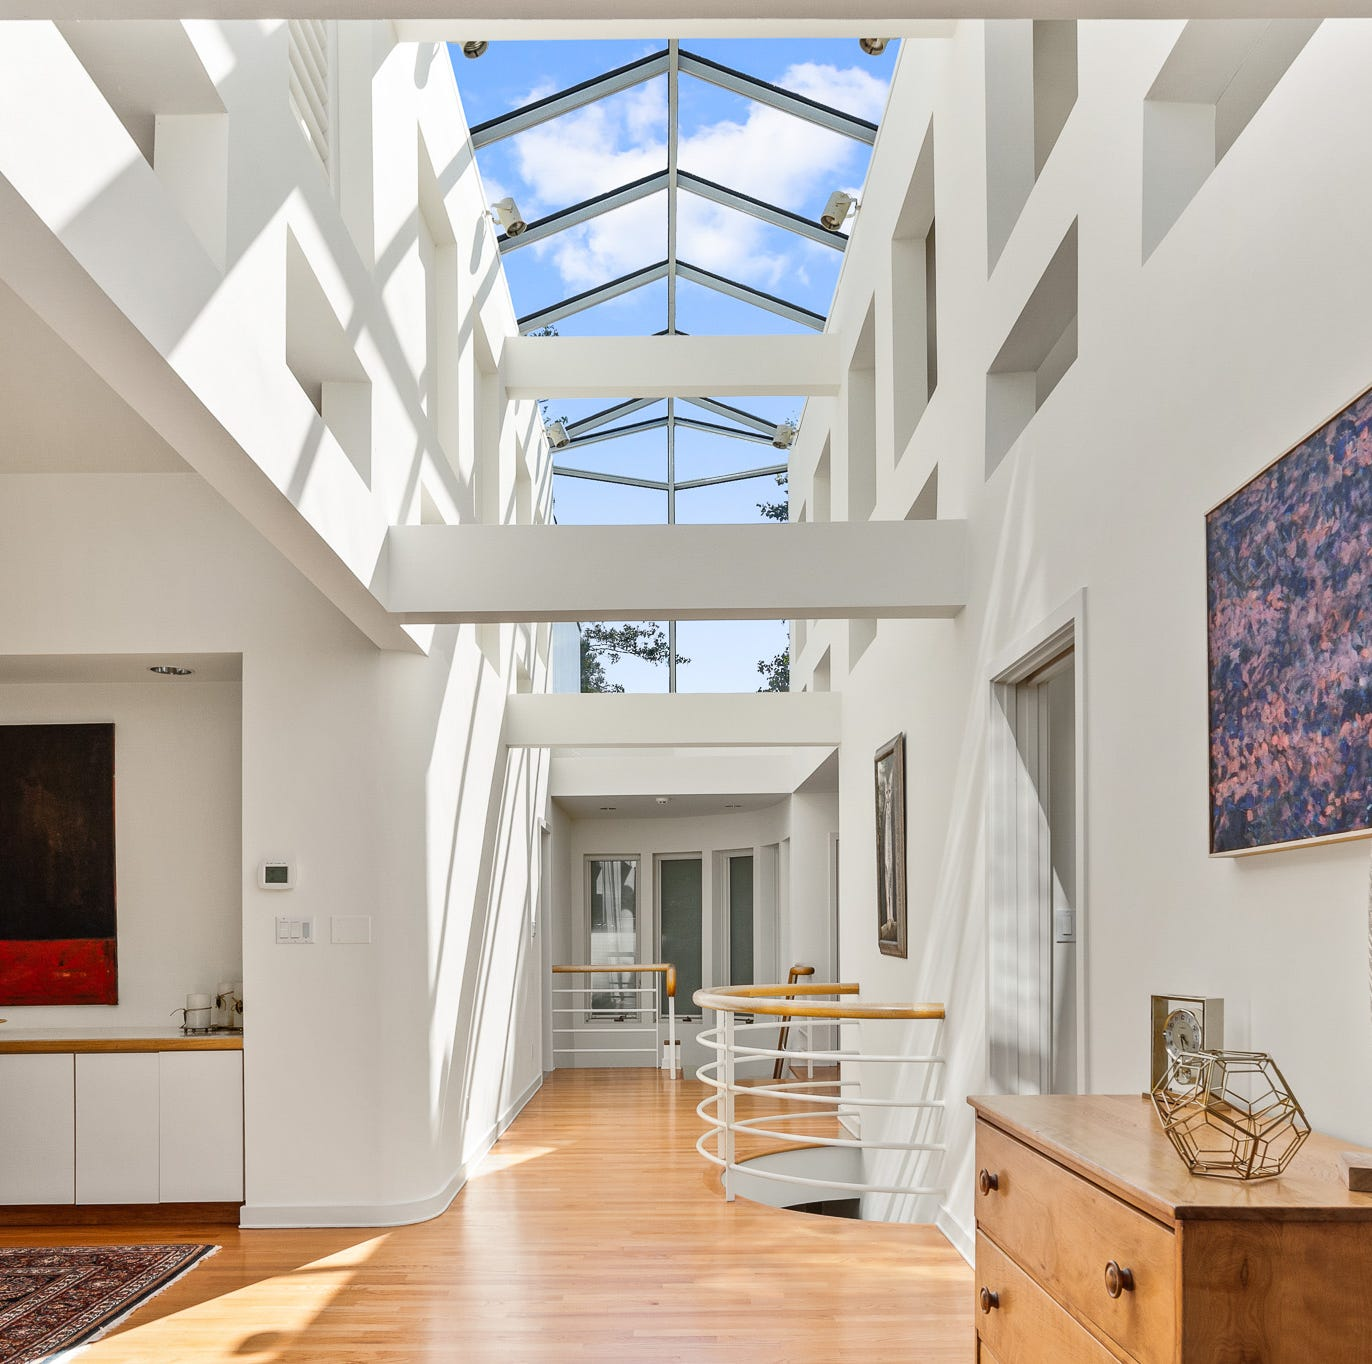 Glass ceiling, contemporary style make this Greenville house a rare jewel